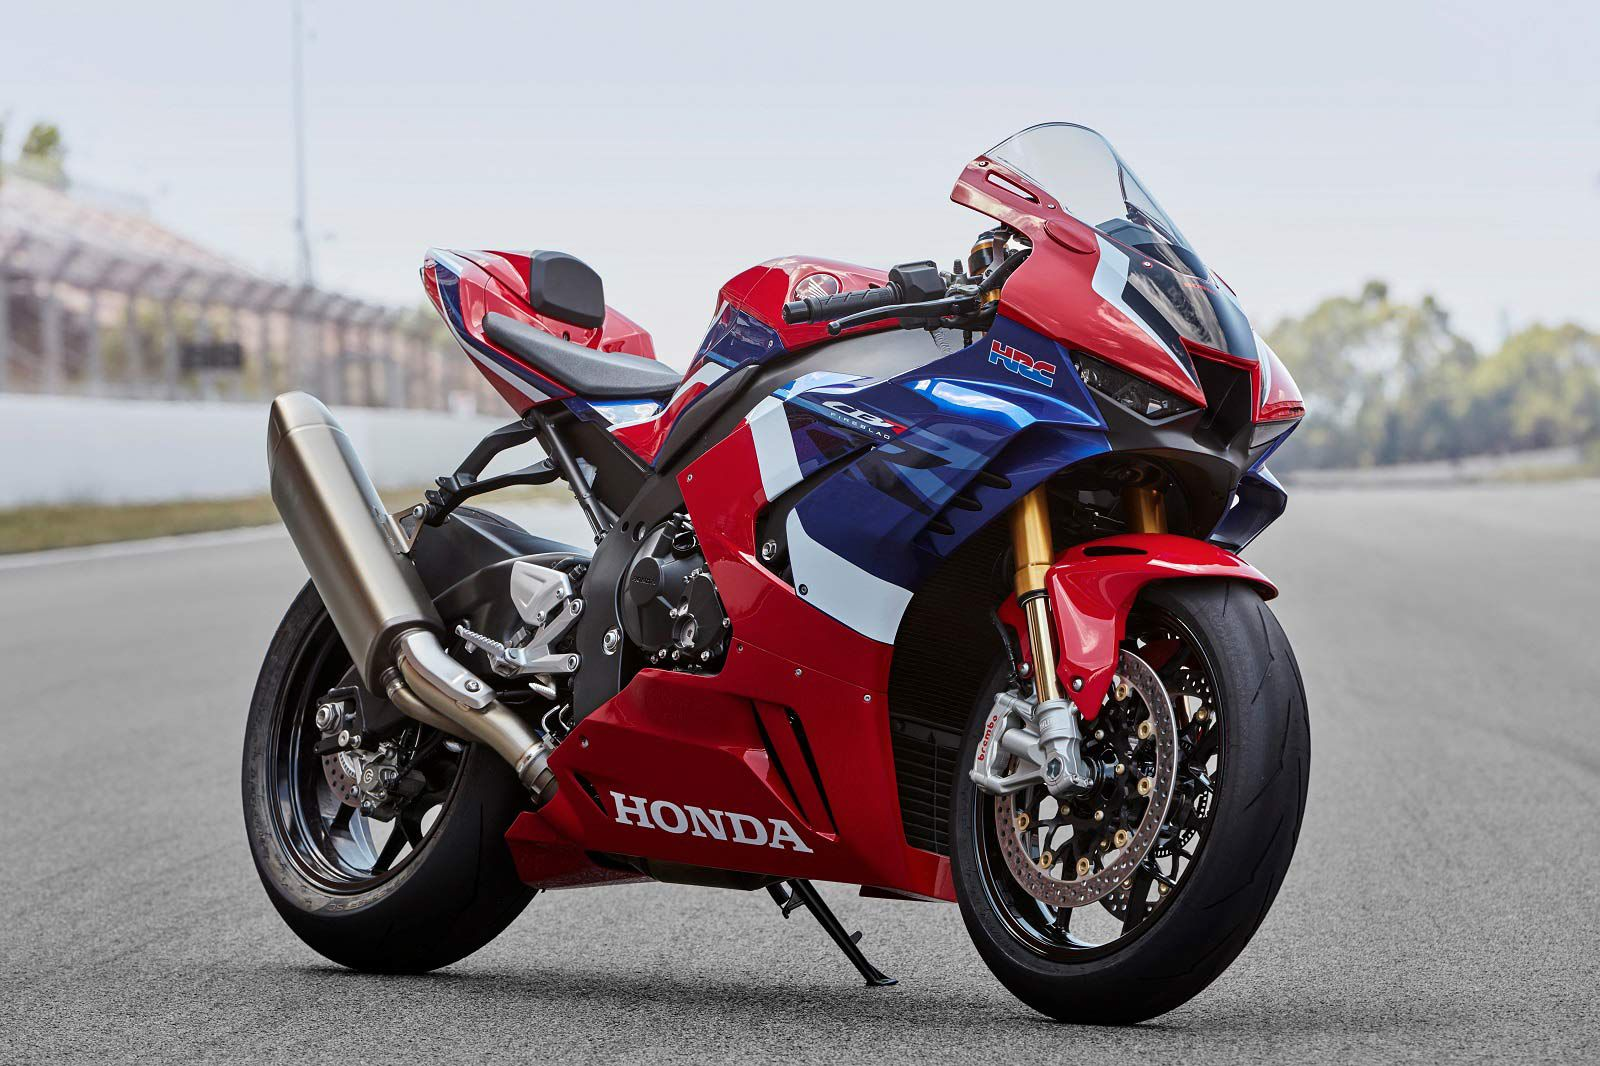 The new changes are expected to be incremental, with reduced weight and improved components being the main tweaks.